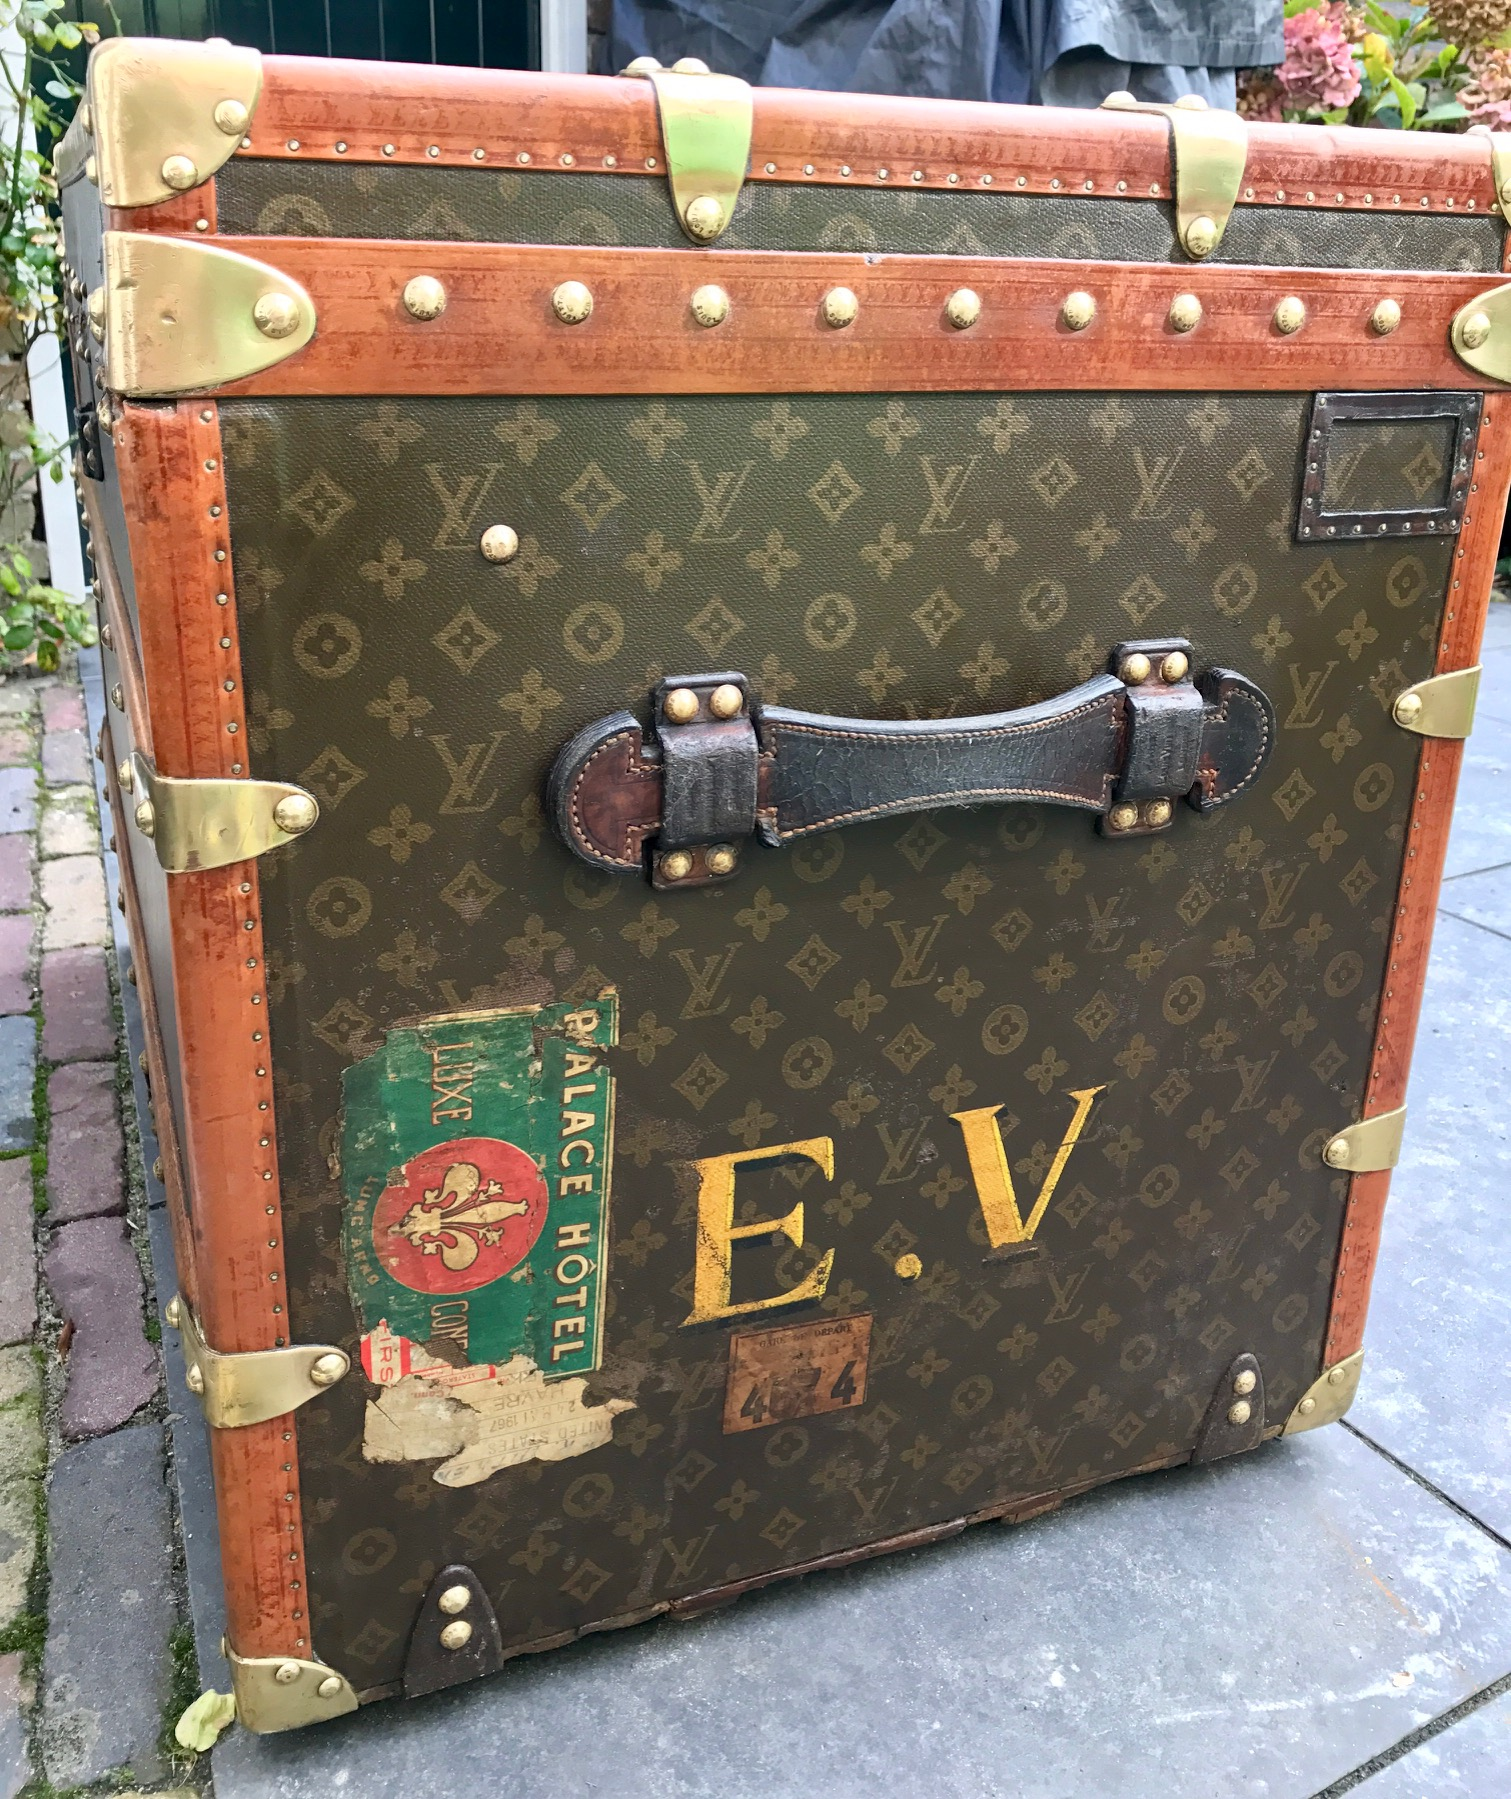 Lv Trunk Coffee Table: Vintage Louis Vuitton Coffee Table Trunk E.V.